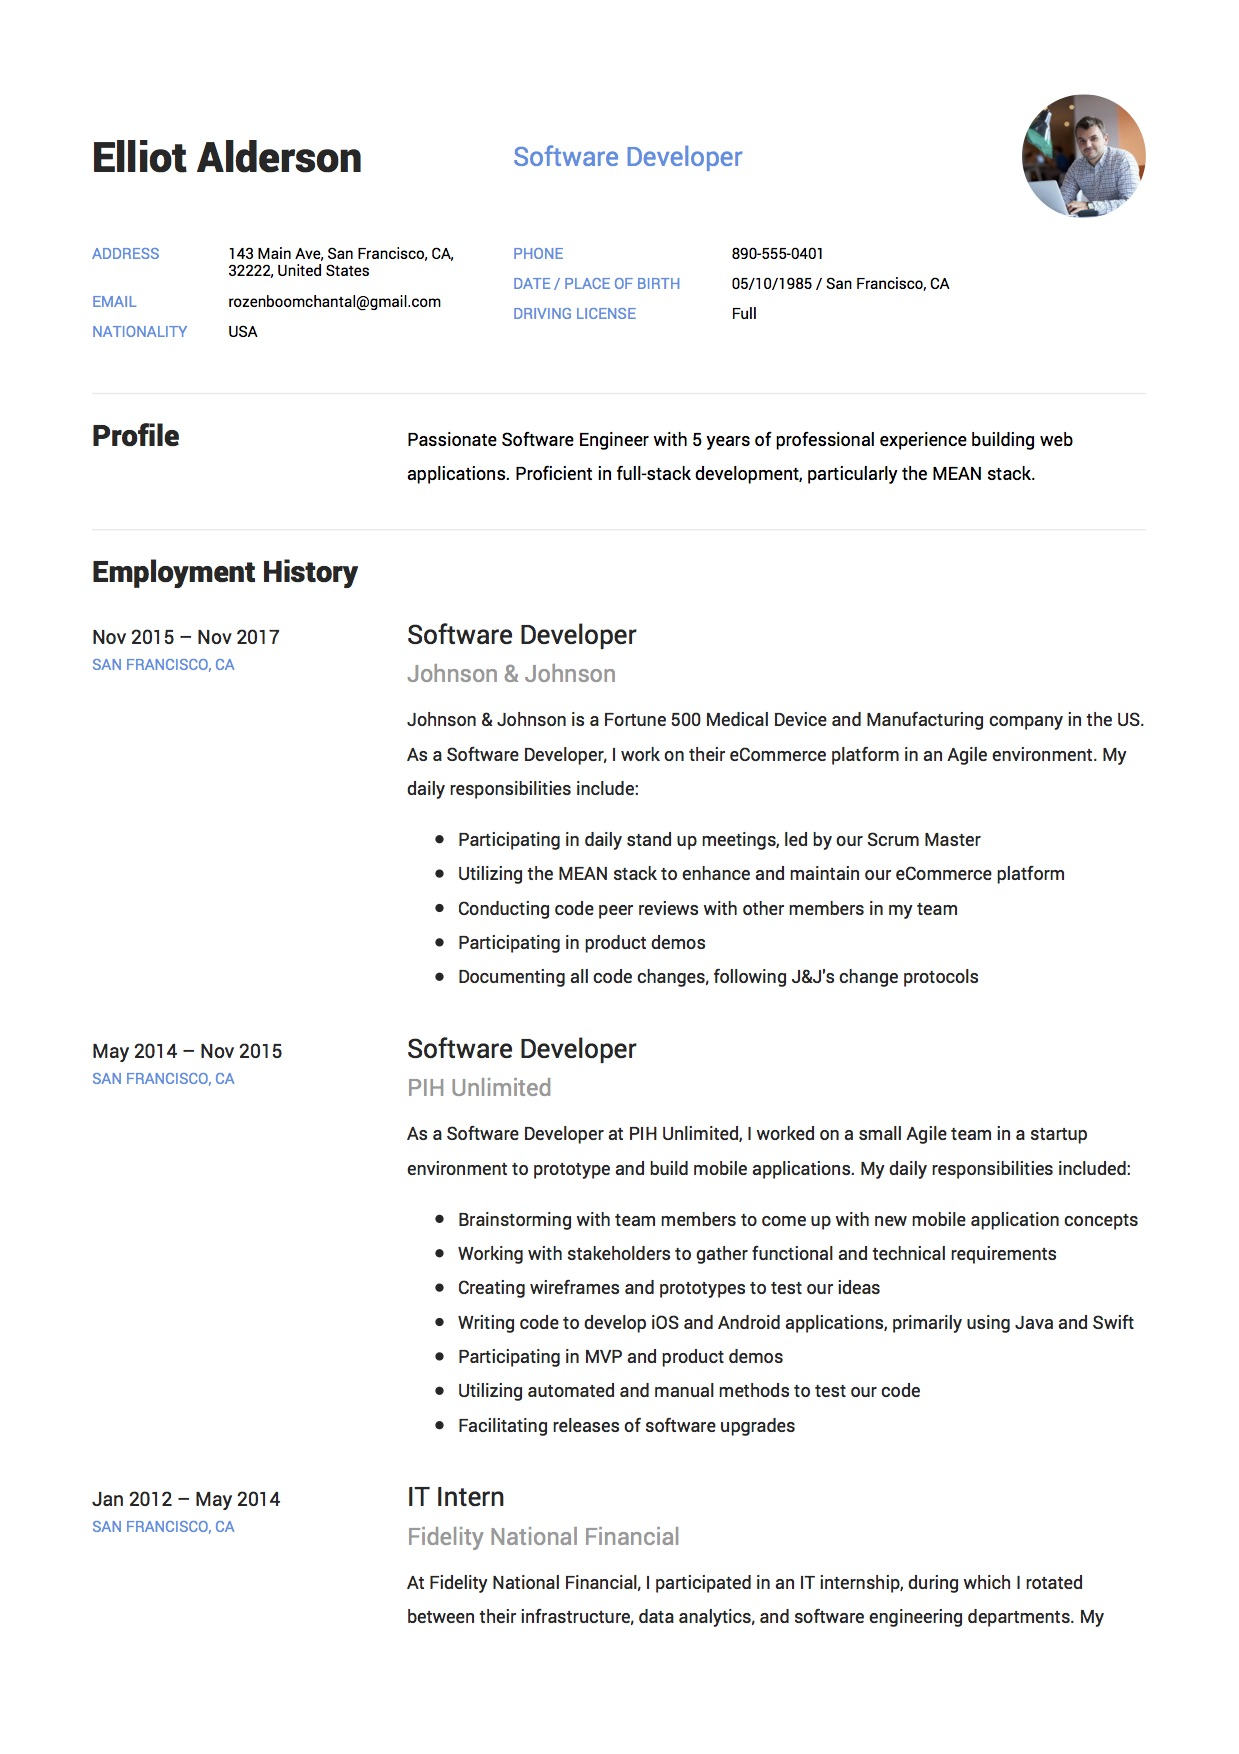 Elliot Alderson - Resume - Software Developer (9)